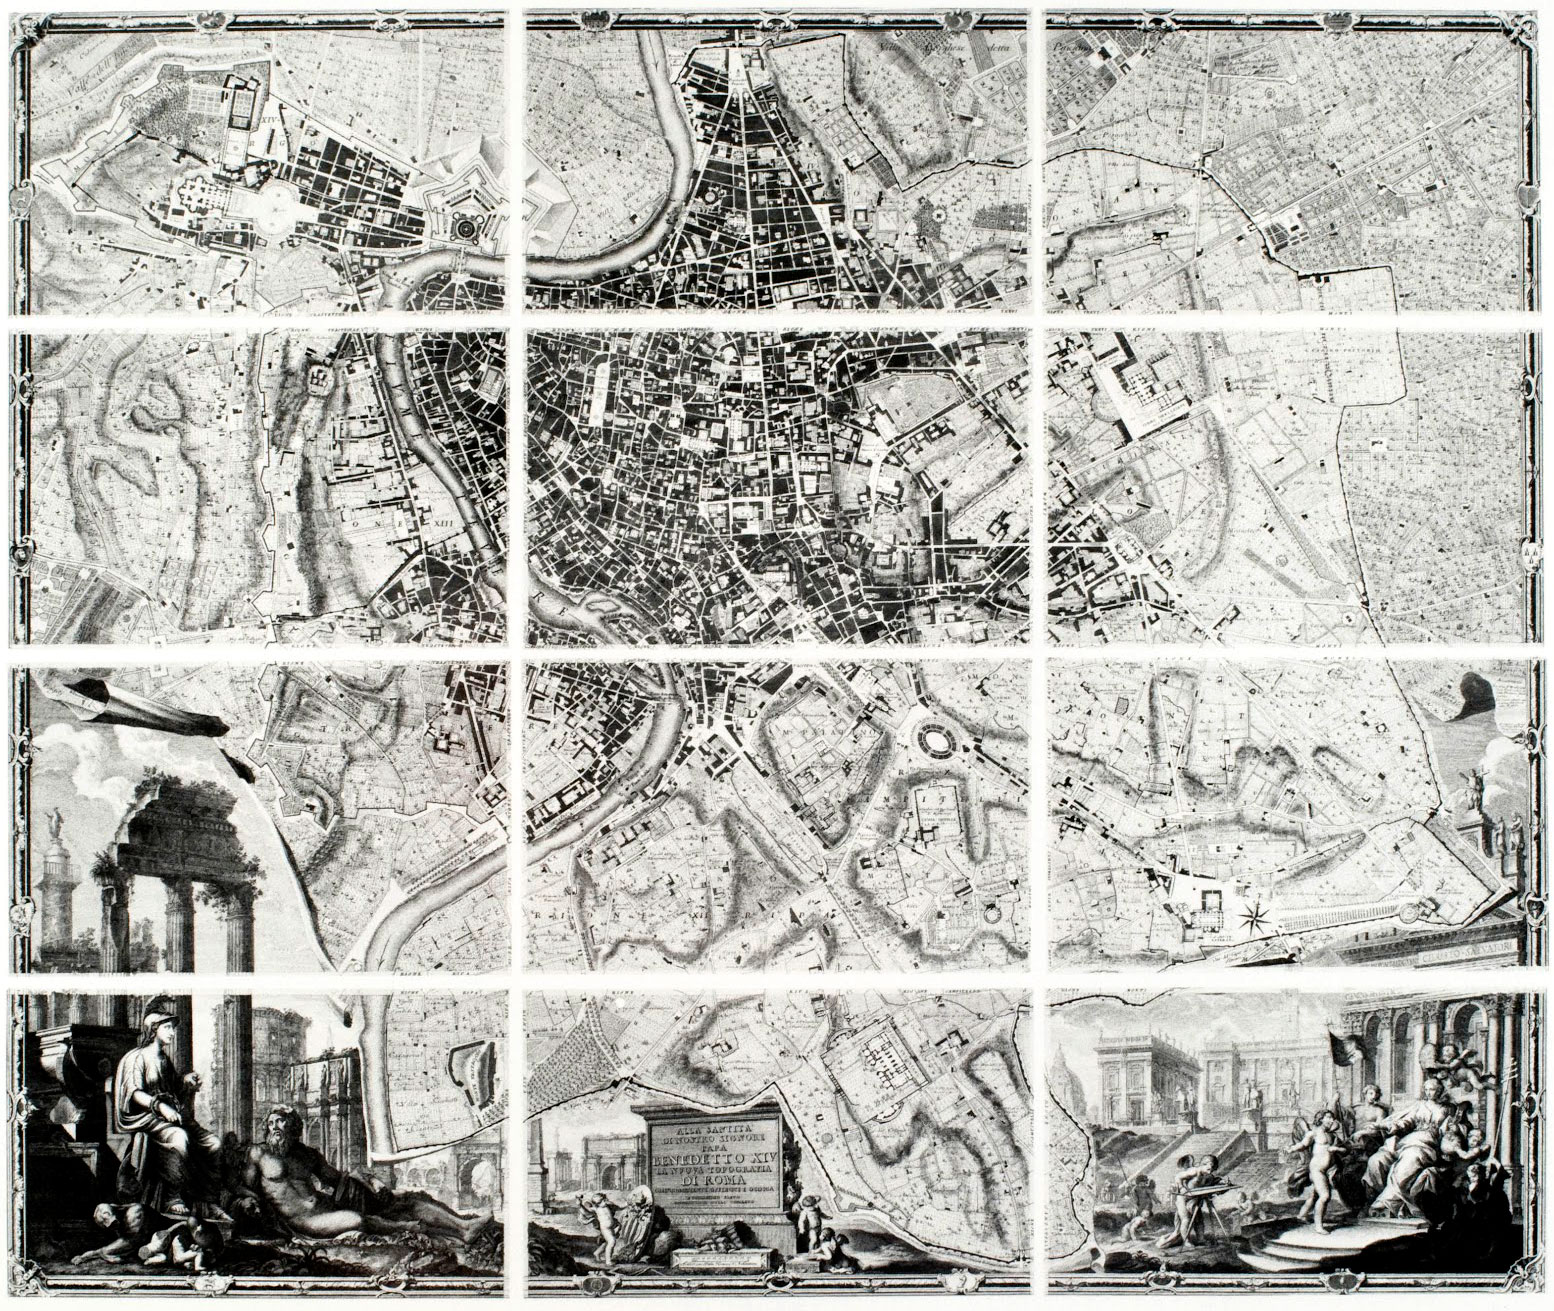 Giovanni Battista Nolli's 1748 Map of Rome. The entire document is about 6ft x 7ft in dimension and comprised of 12 smaller portions. The Nolli Map has become one of the most appropriate ways to understand existing spatial relationships and plan future development.